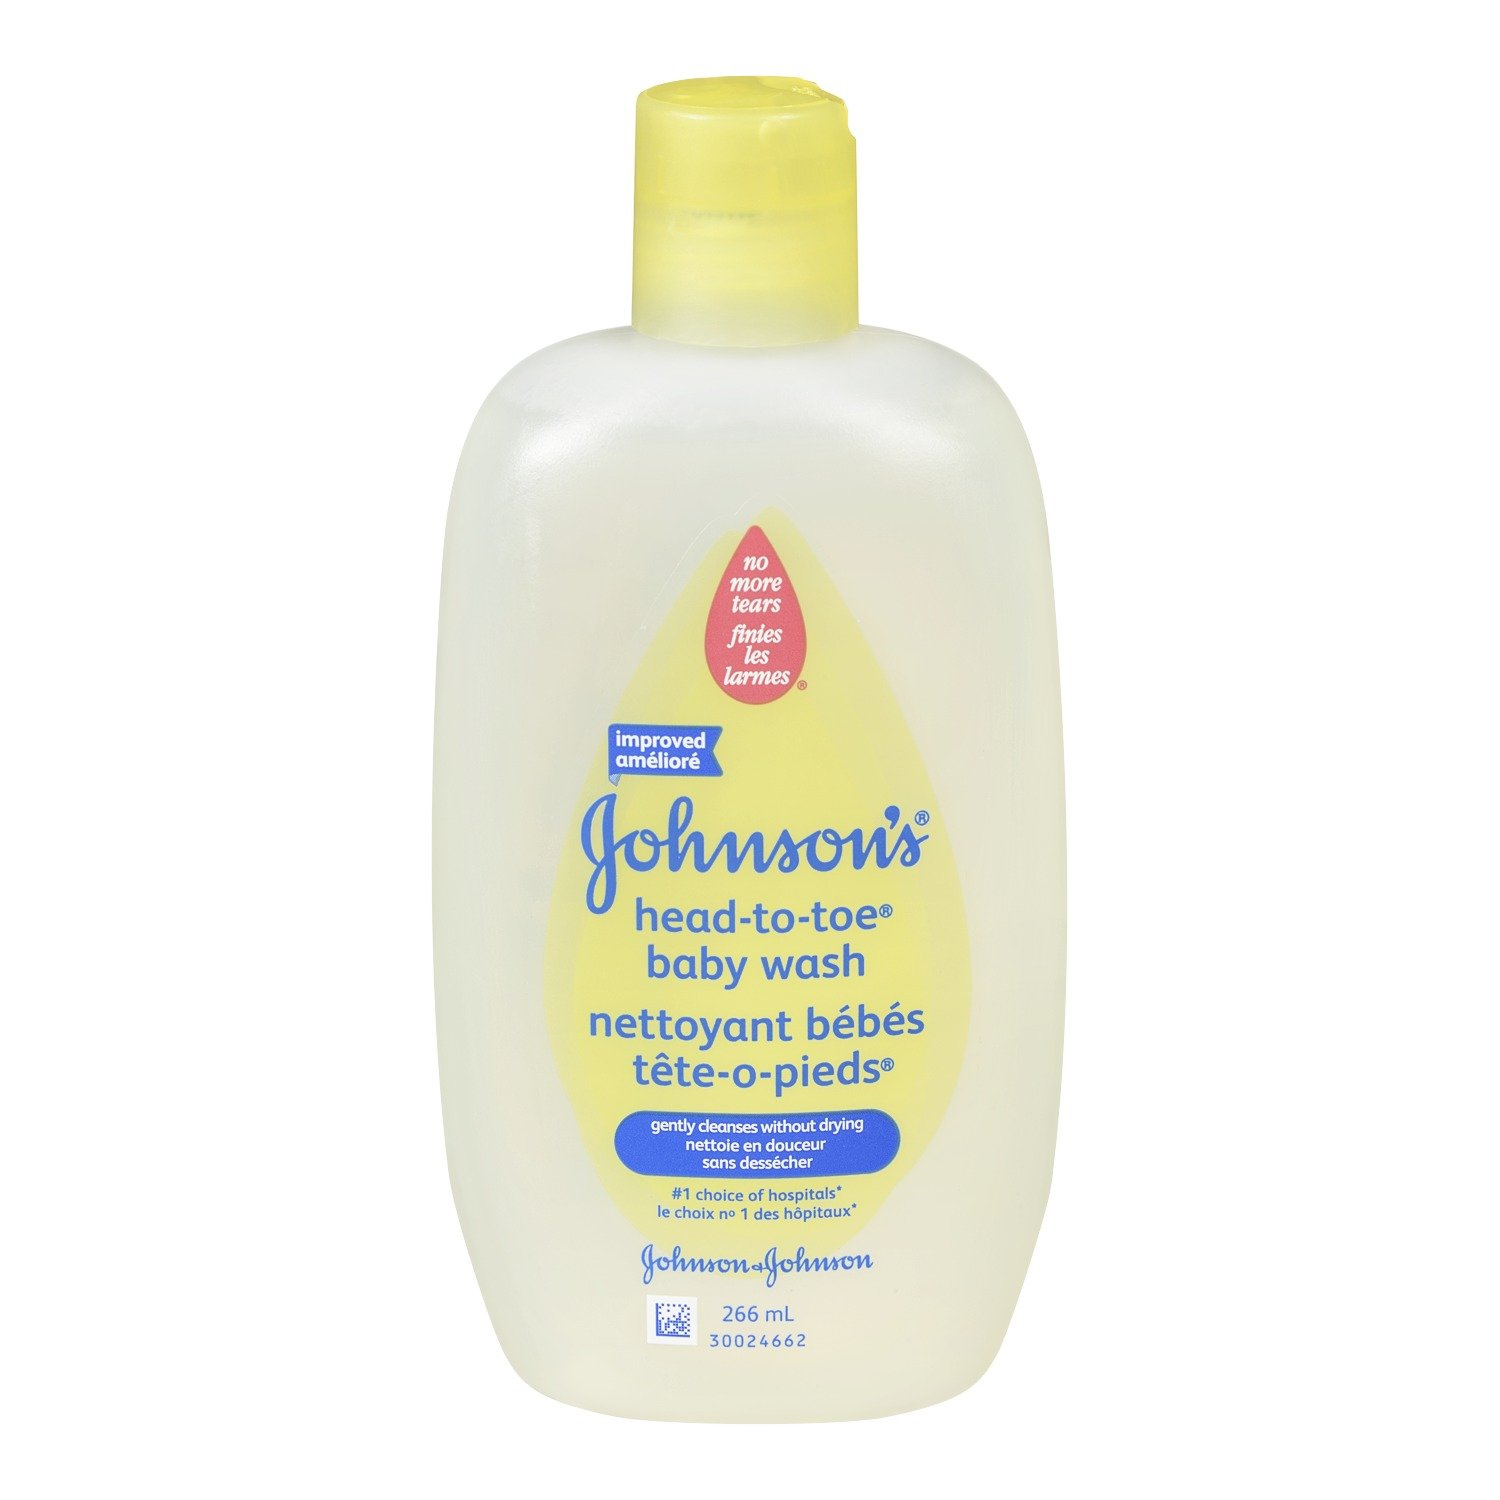 Johnson's Head to Toe Baby Wash Ultra Mild Cleanser, 266 ml Johnson's